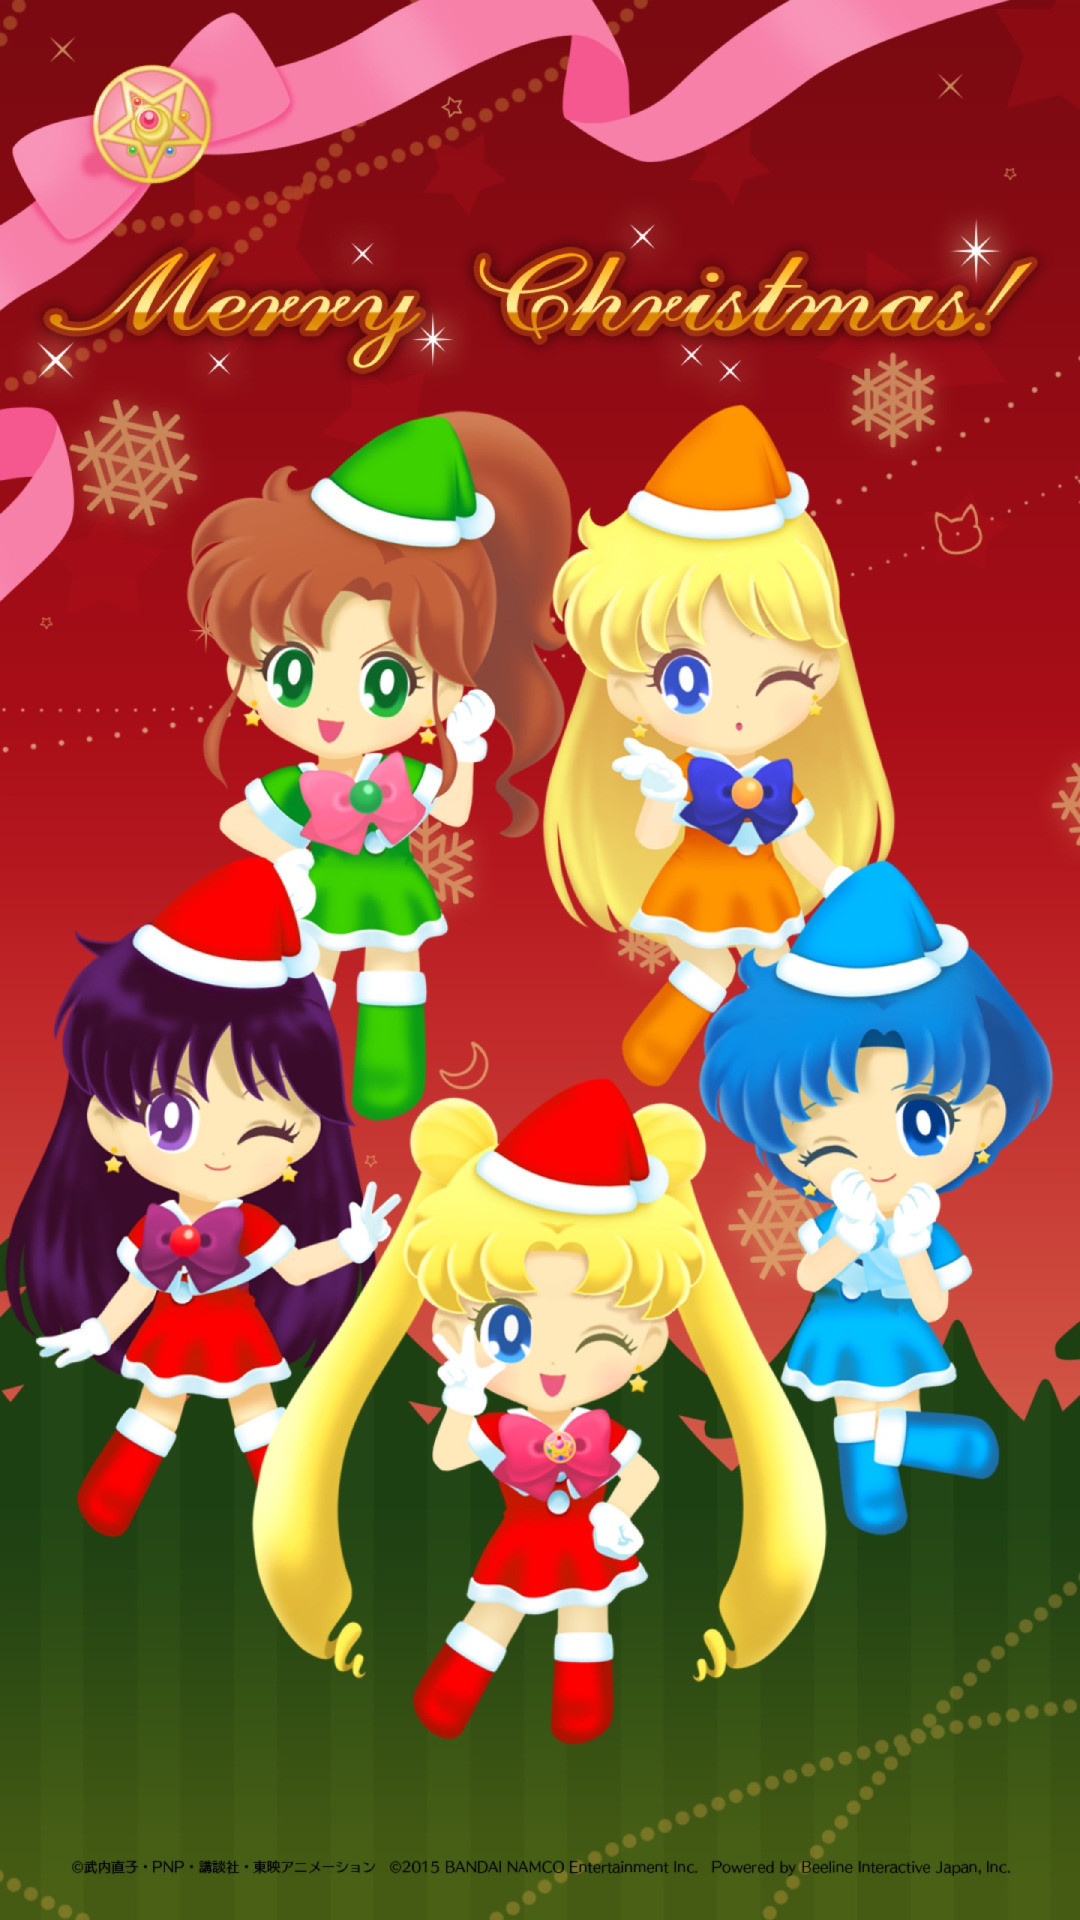 Wallpaper from Christmas event by Sailor moon drop game!